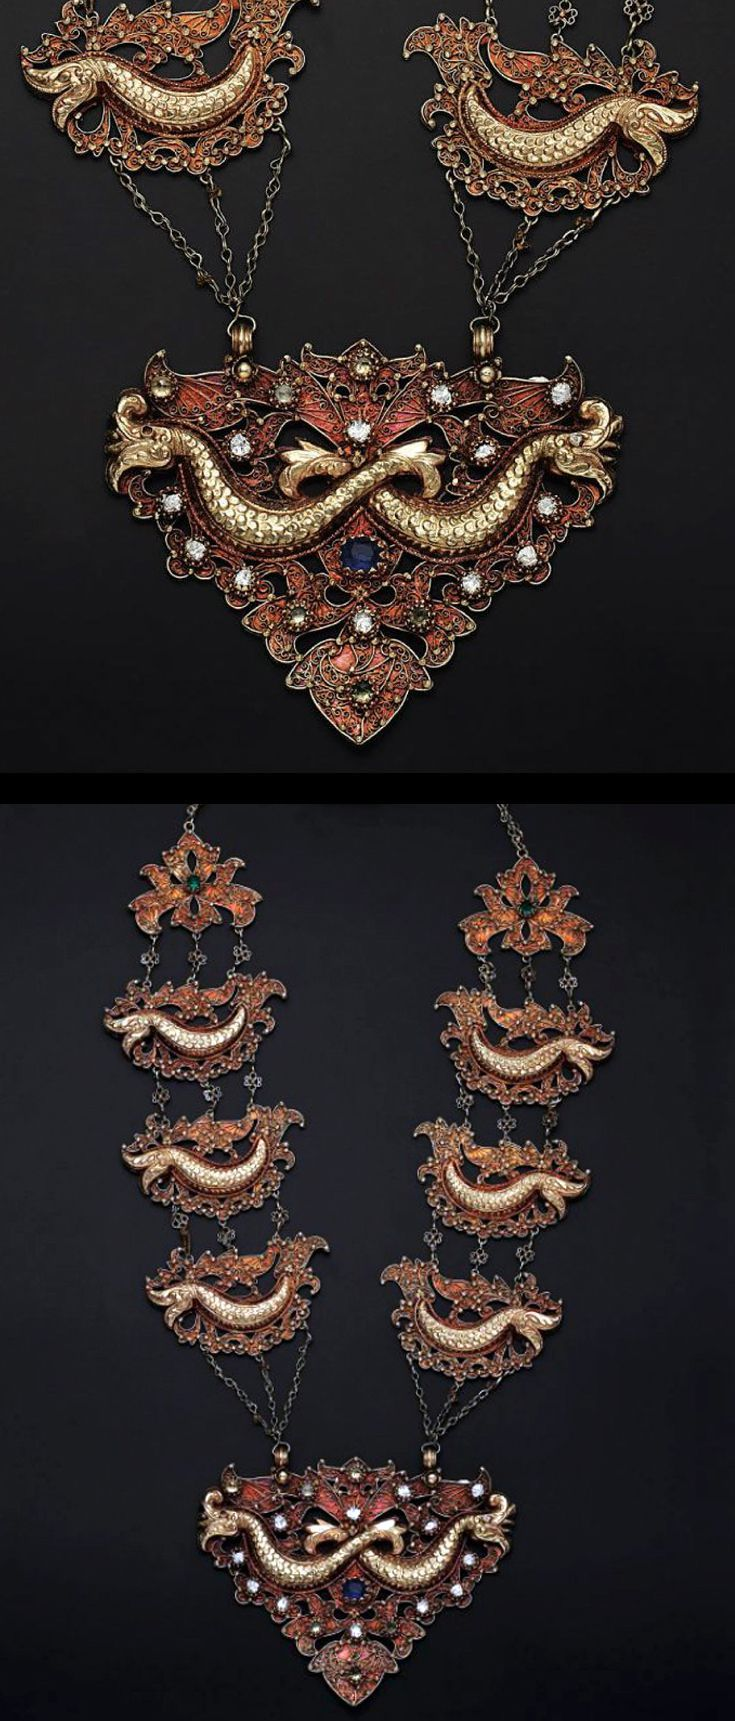 Indonesia ~ Aceh | Necklace with 'naga' motifs; gold alloy | 18th - 19th century